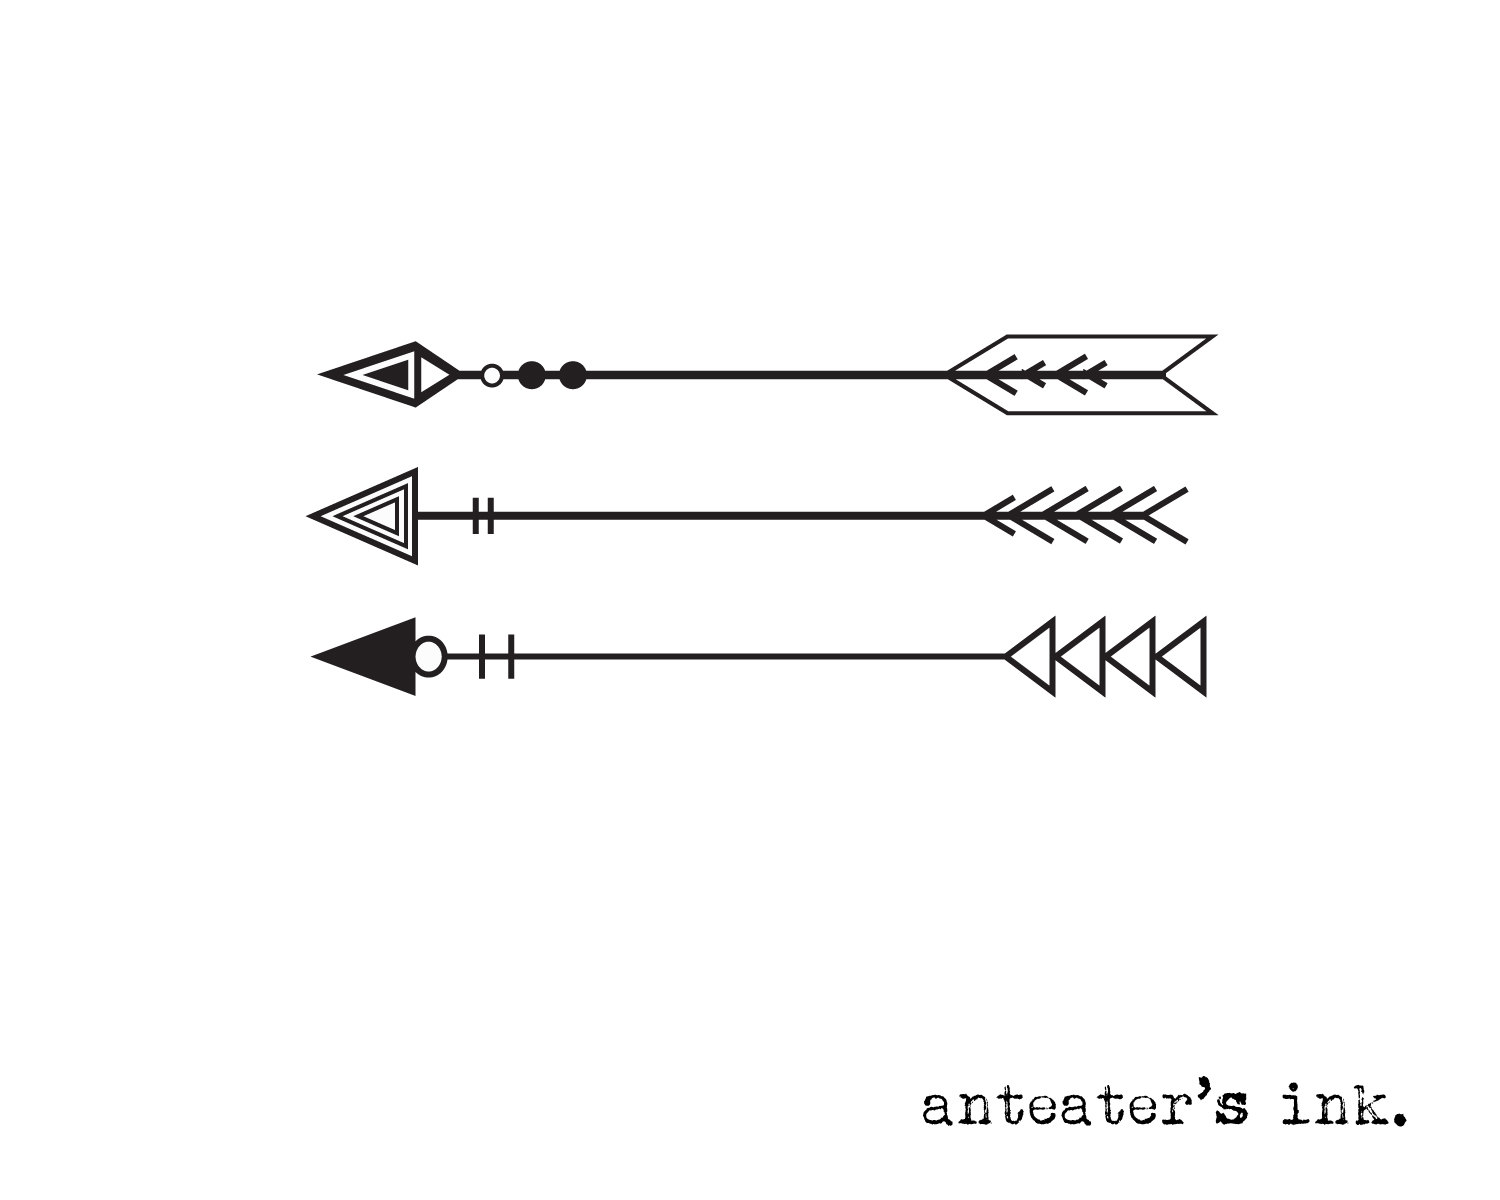 Hipster clipart modern arrow For items ideas Arrow Good